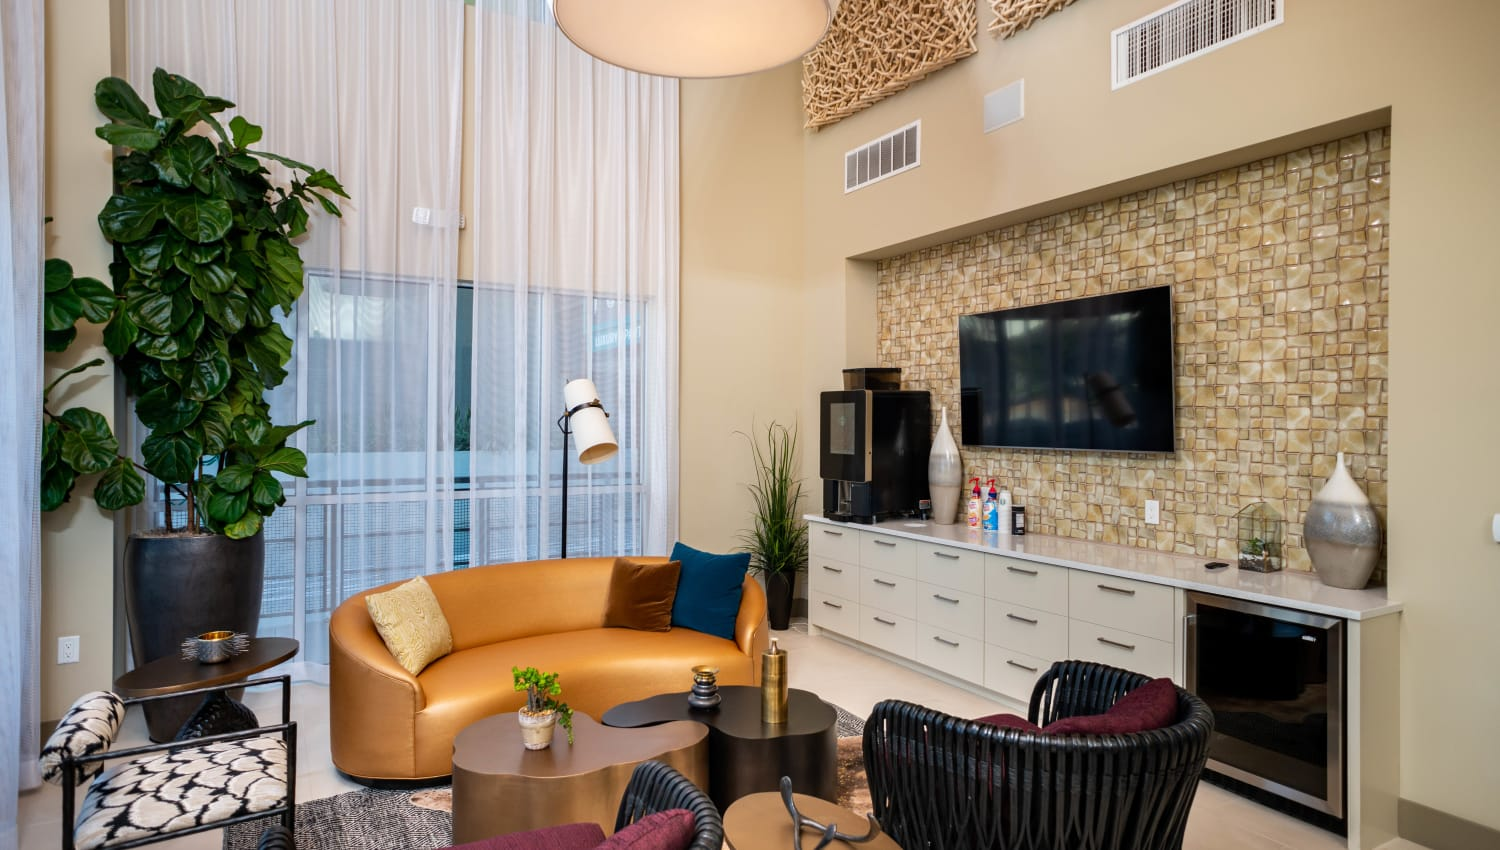 Complimentary coffee service area in the lobby at Fusion Apartments in Irvine, California